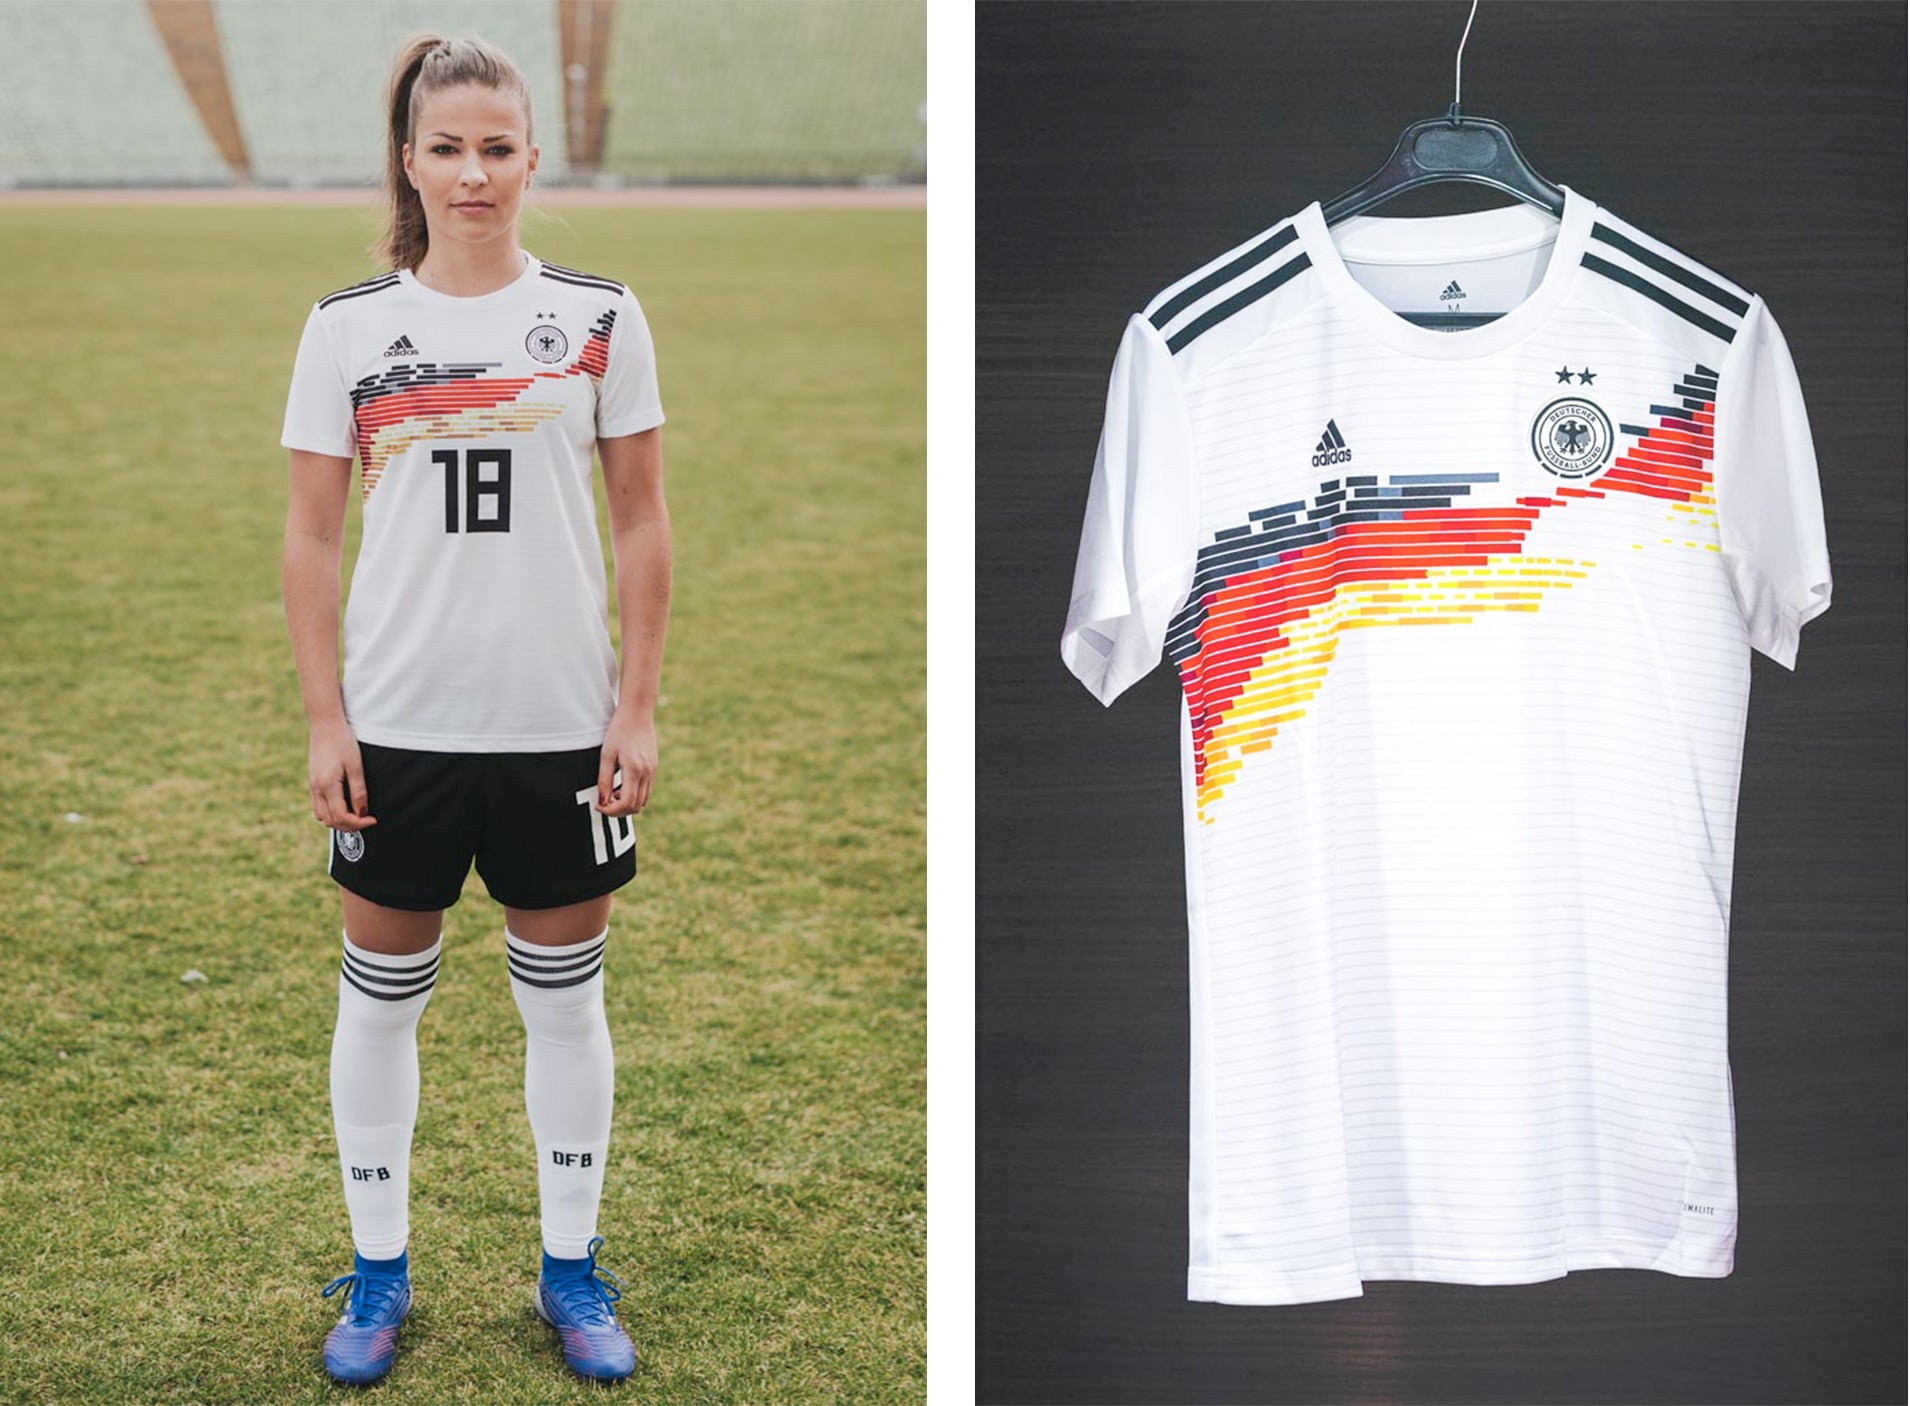 c51925f6eb4 The timeless kit is completed by black shorts and white socks. The away  jersey of the DFB women is burgundy, and the goalkeepers will play in blue.